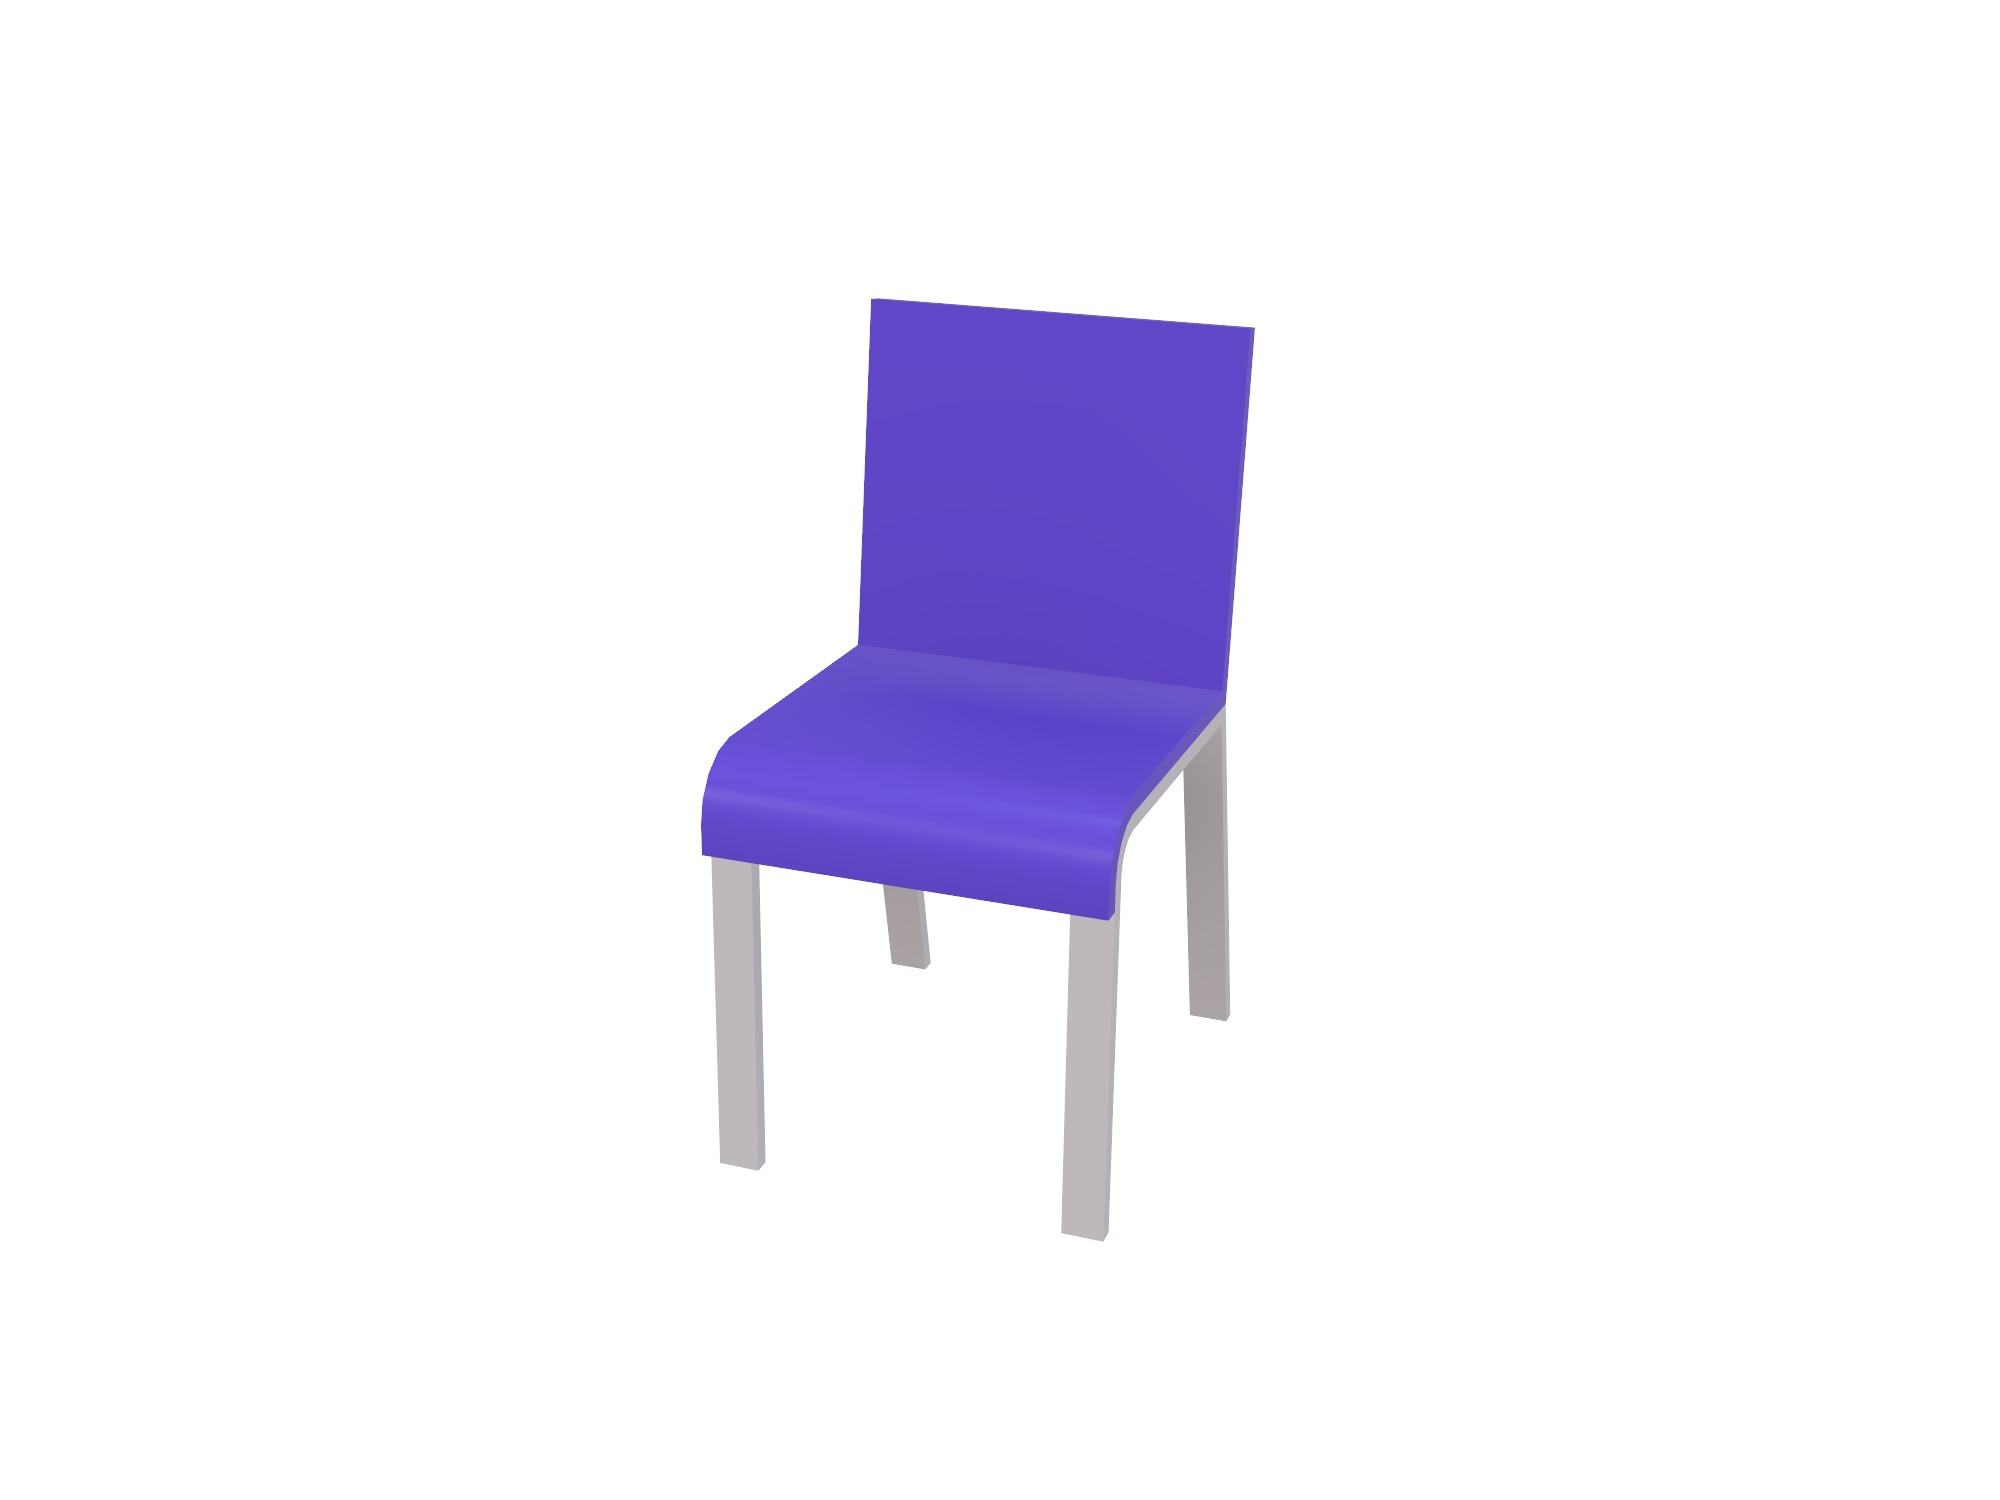 Chair - 3D design by Vectary assets Jun 3, 2018